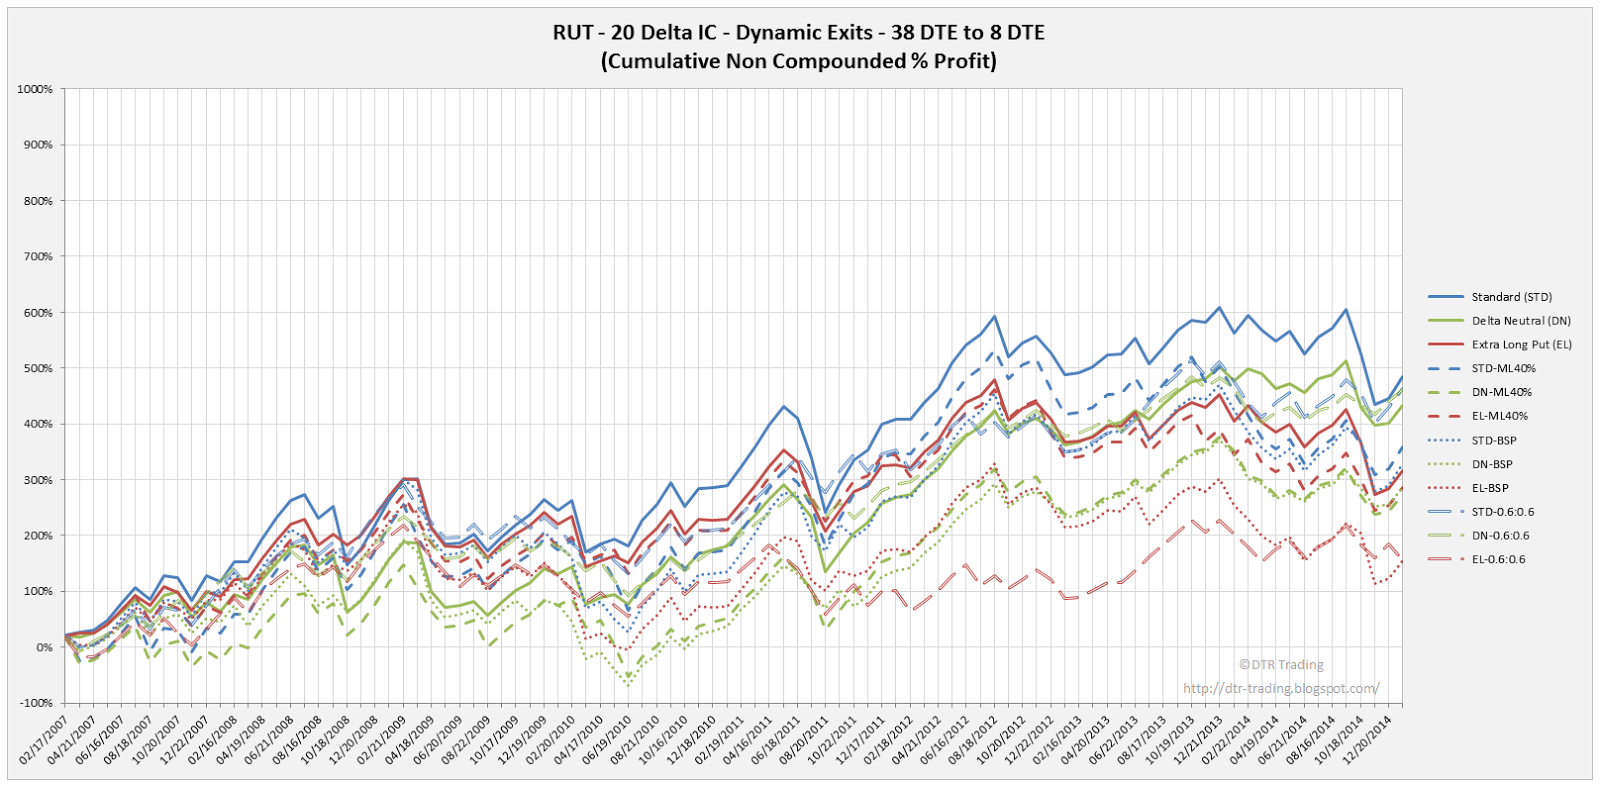 ron Condor Dynamic Exit Equity Curves RUT 38 DTE 20 Delta All Versions